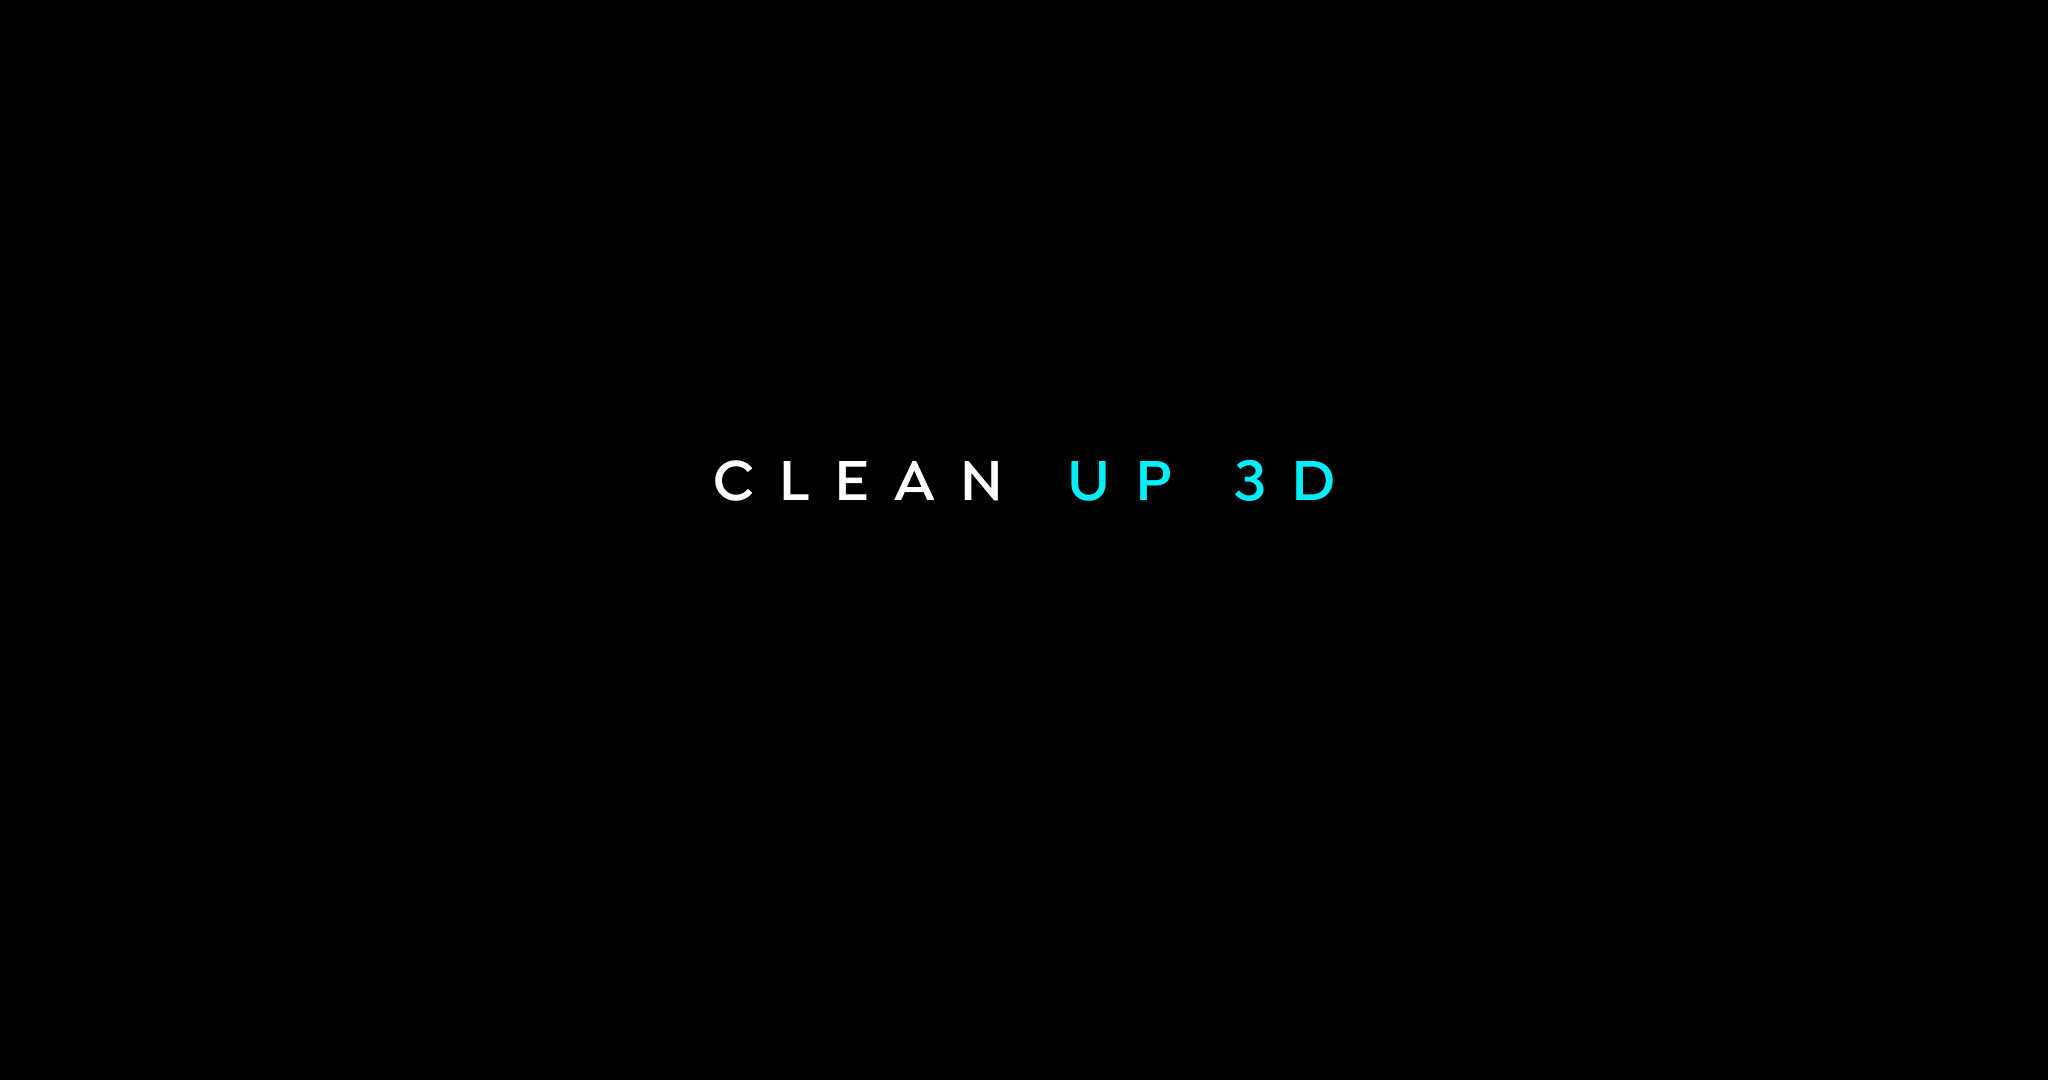 Clean up – 3D projections